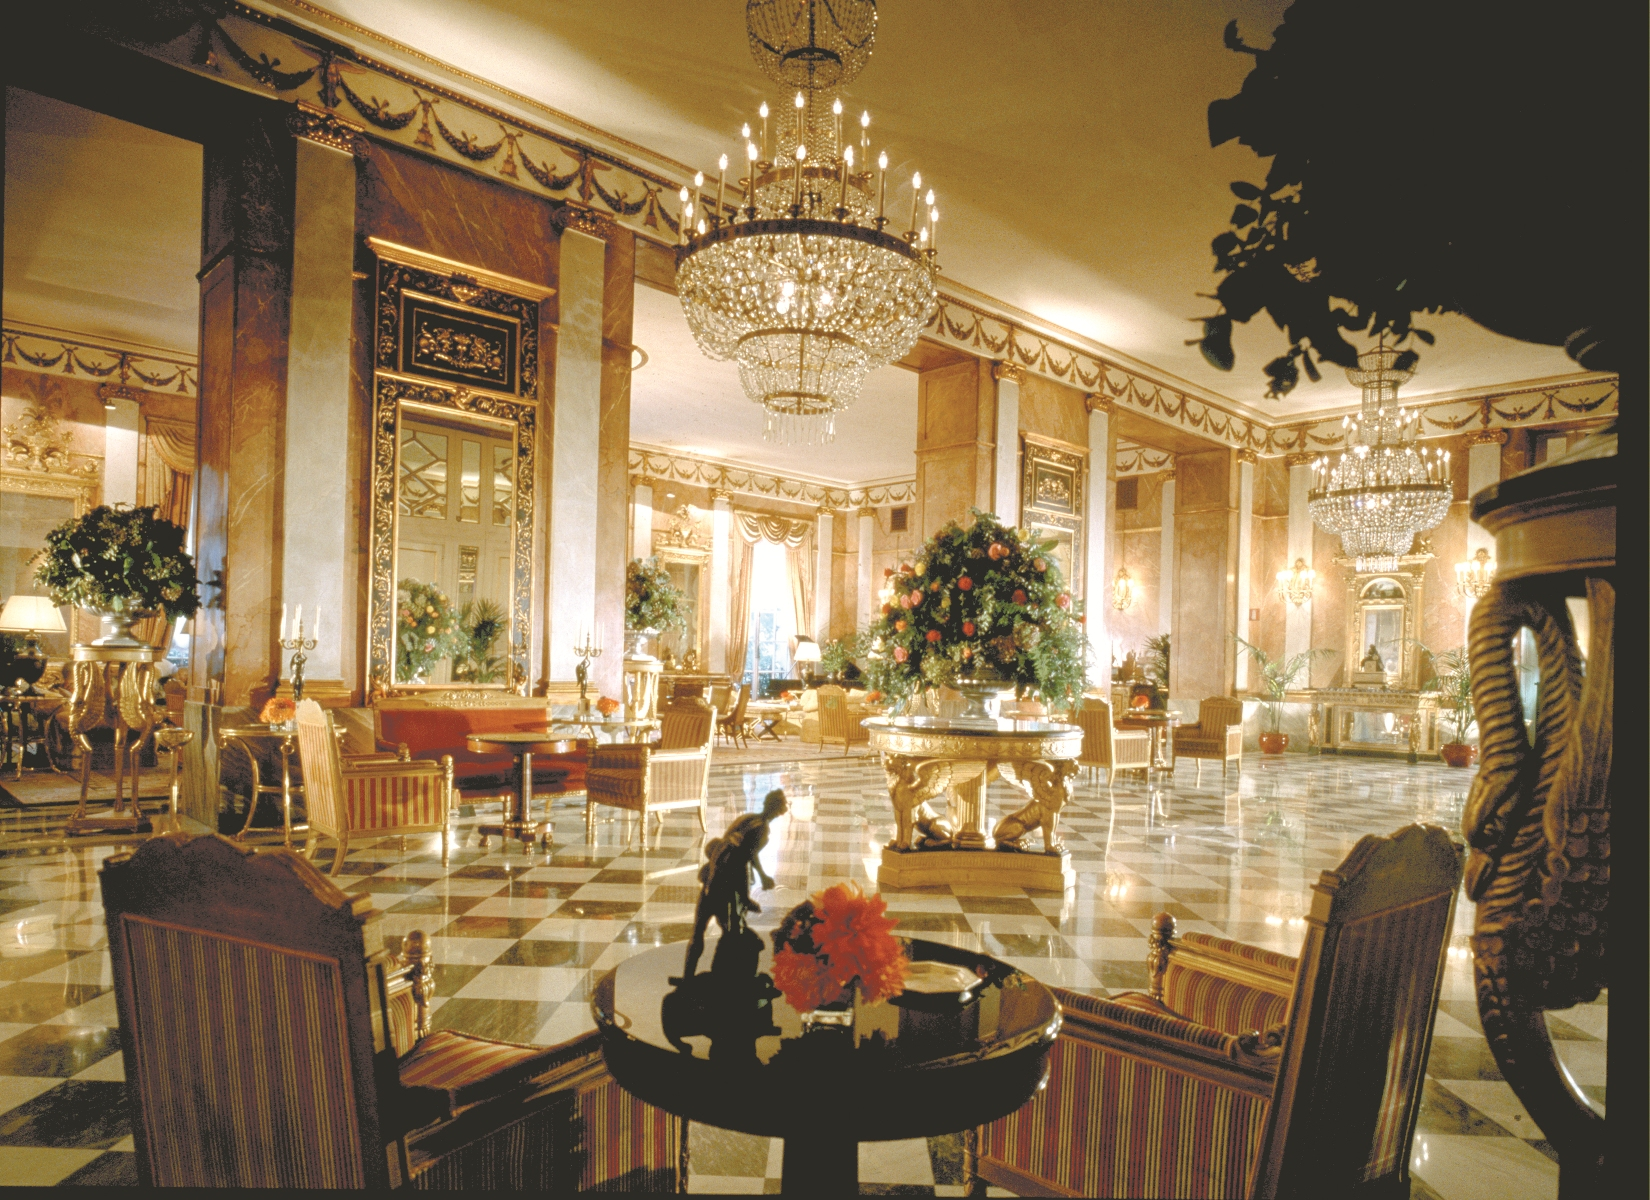 Westin excelsior florence italy westin excelsior florence deals - Westin Excelsior Florence Italy Westin Excelsior Florence Deals 40